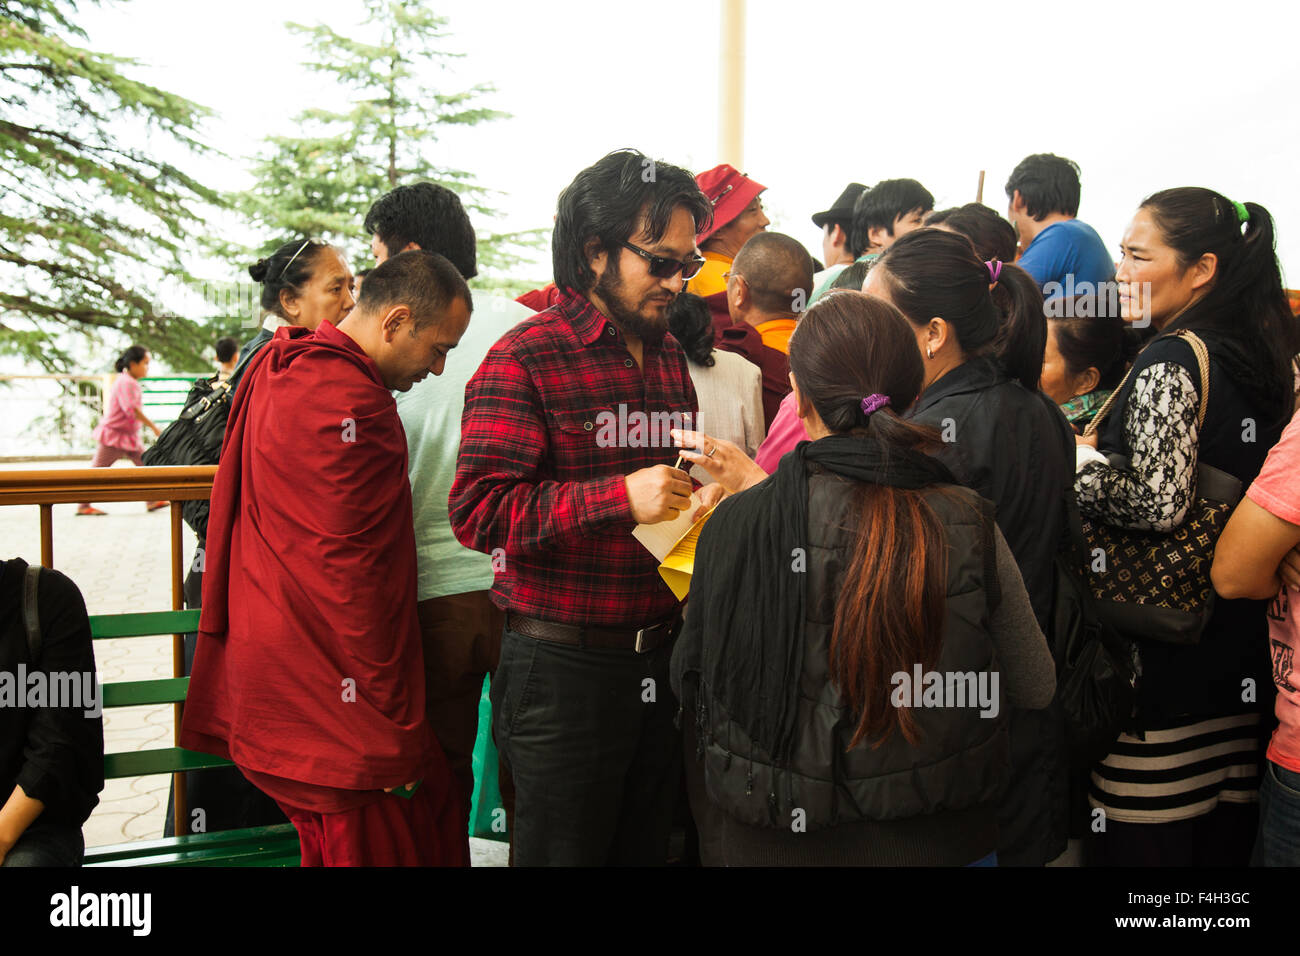 Mcleodganj, Himachal Pradesh. 18 october 2015.  Lukar Jam talking to people at Tibetan parliamentary election. - Stock Image